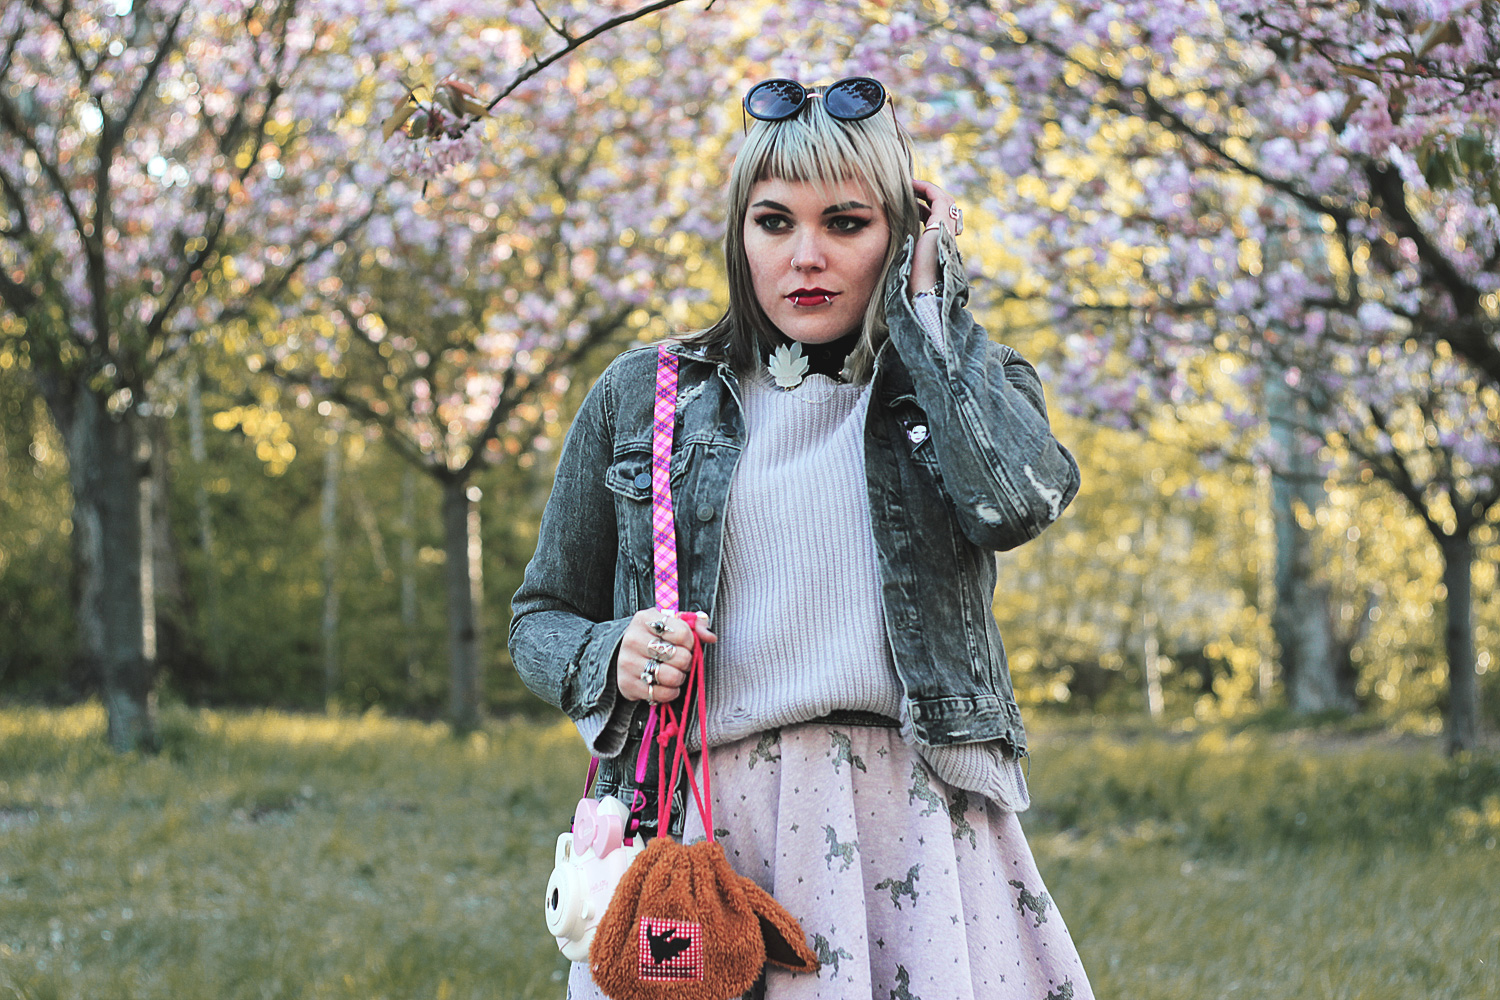 sakura, hanami, Sonnenbrille, sunglasses, strick, Frühling, spring, hello there, hell here, new look, kirschblüte, kirschblütenfest, disturbia, pins, pingame, denim jacket, jeansjacke, denim, diy, rock, einhorn, einhörner, unicorn, fujifilm, instax, hello kitty, creeper, creepers, strumpfhose, calzedonia, robert smith, kragenclips, hey chickadee, alternative, alternative fashion, alternative girl, alternative mode, altgirl, berlin, berlin fashion, berlin fashion blogger, berlin mode, berlin streetstyle, blogger, fashion blogger, girls with piercings, girls with tattoos, grunge, grunge fashion, grunge mode, mode, Punk, punk fashion, punk mode, punkgirl, punkmädchen, scenehair, snakebites, split hair, splithair, tattoomädchen, tattoo model, evoli, pokemon